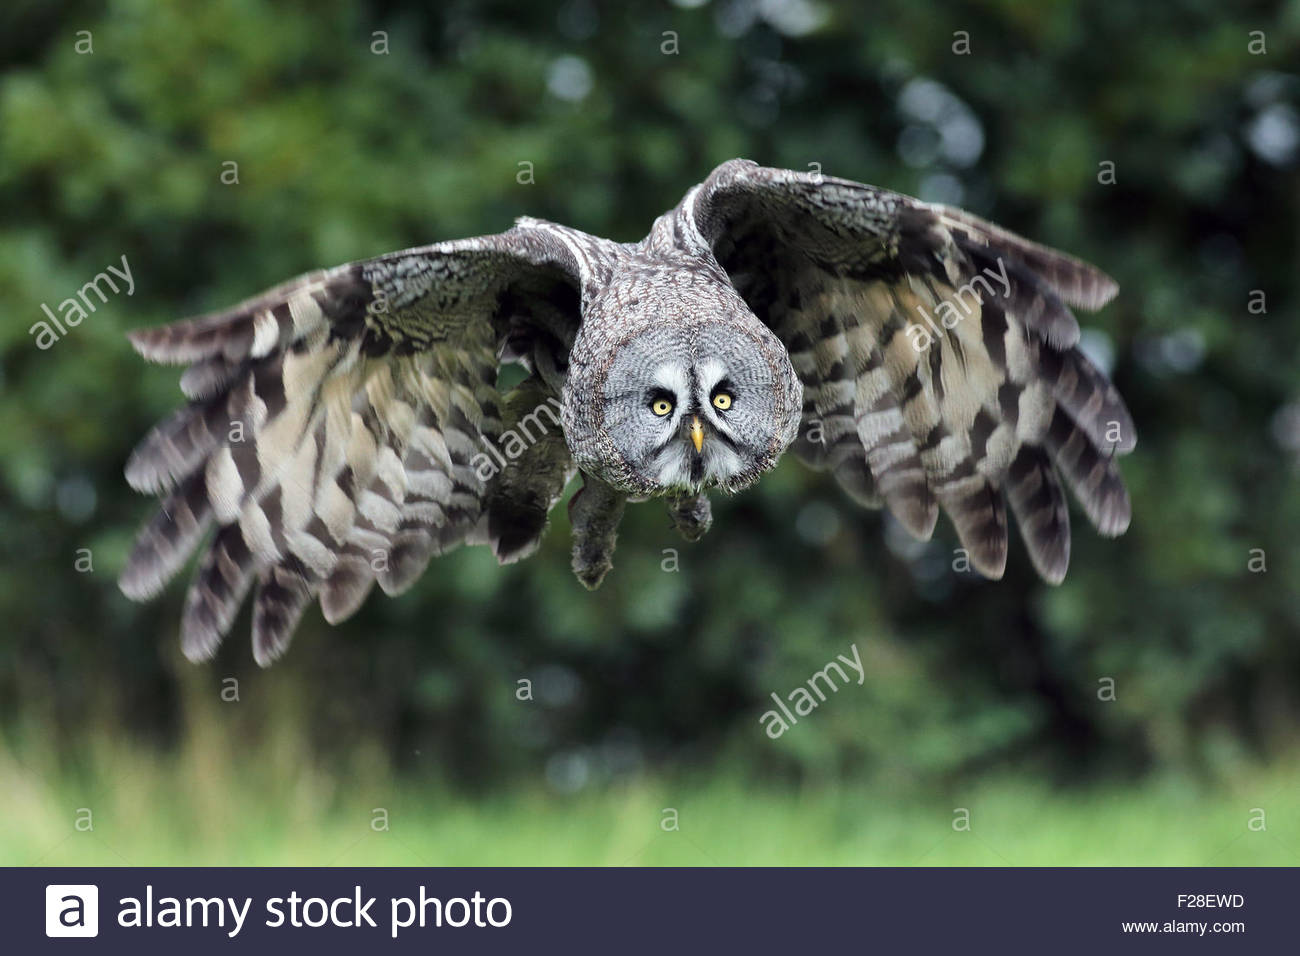 A Great Grey Owl in flight over a meadow. - Stock Image